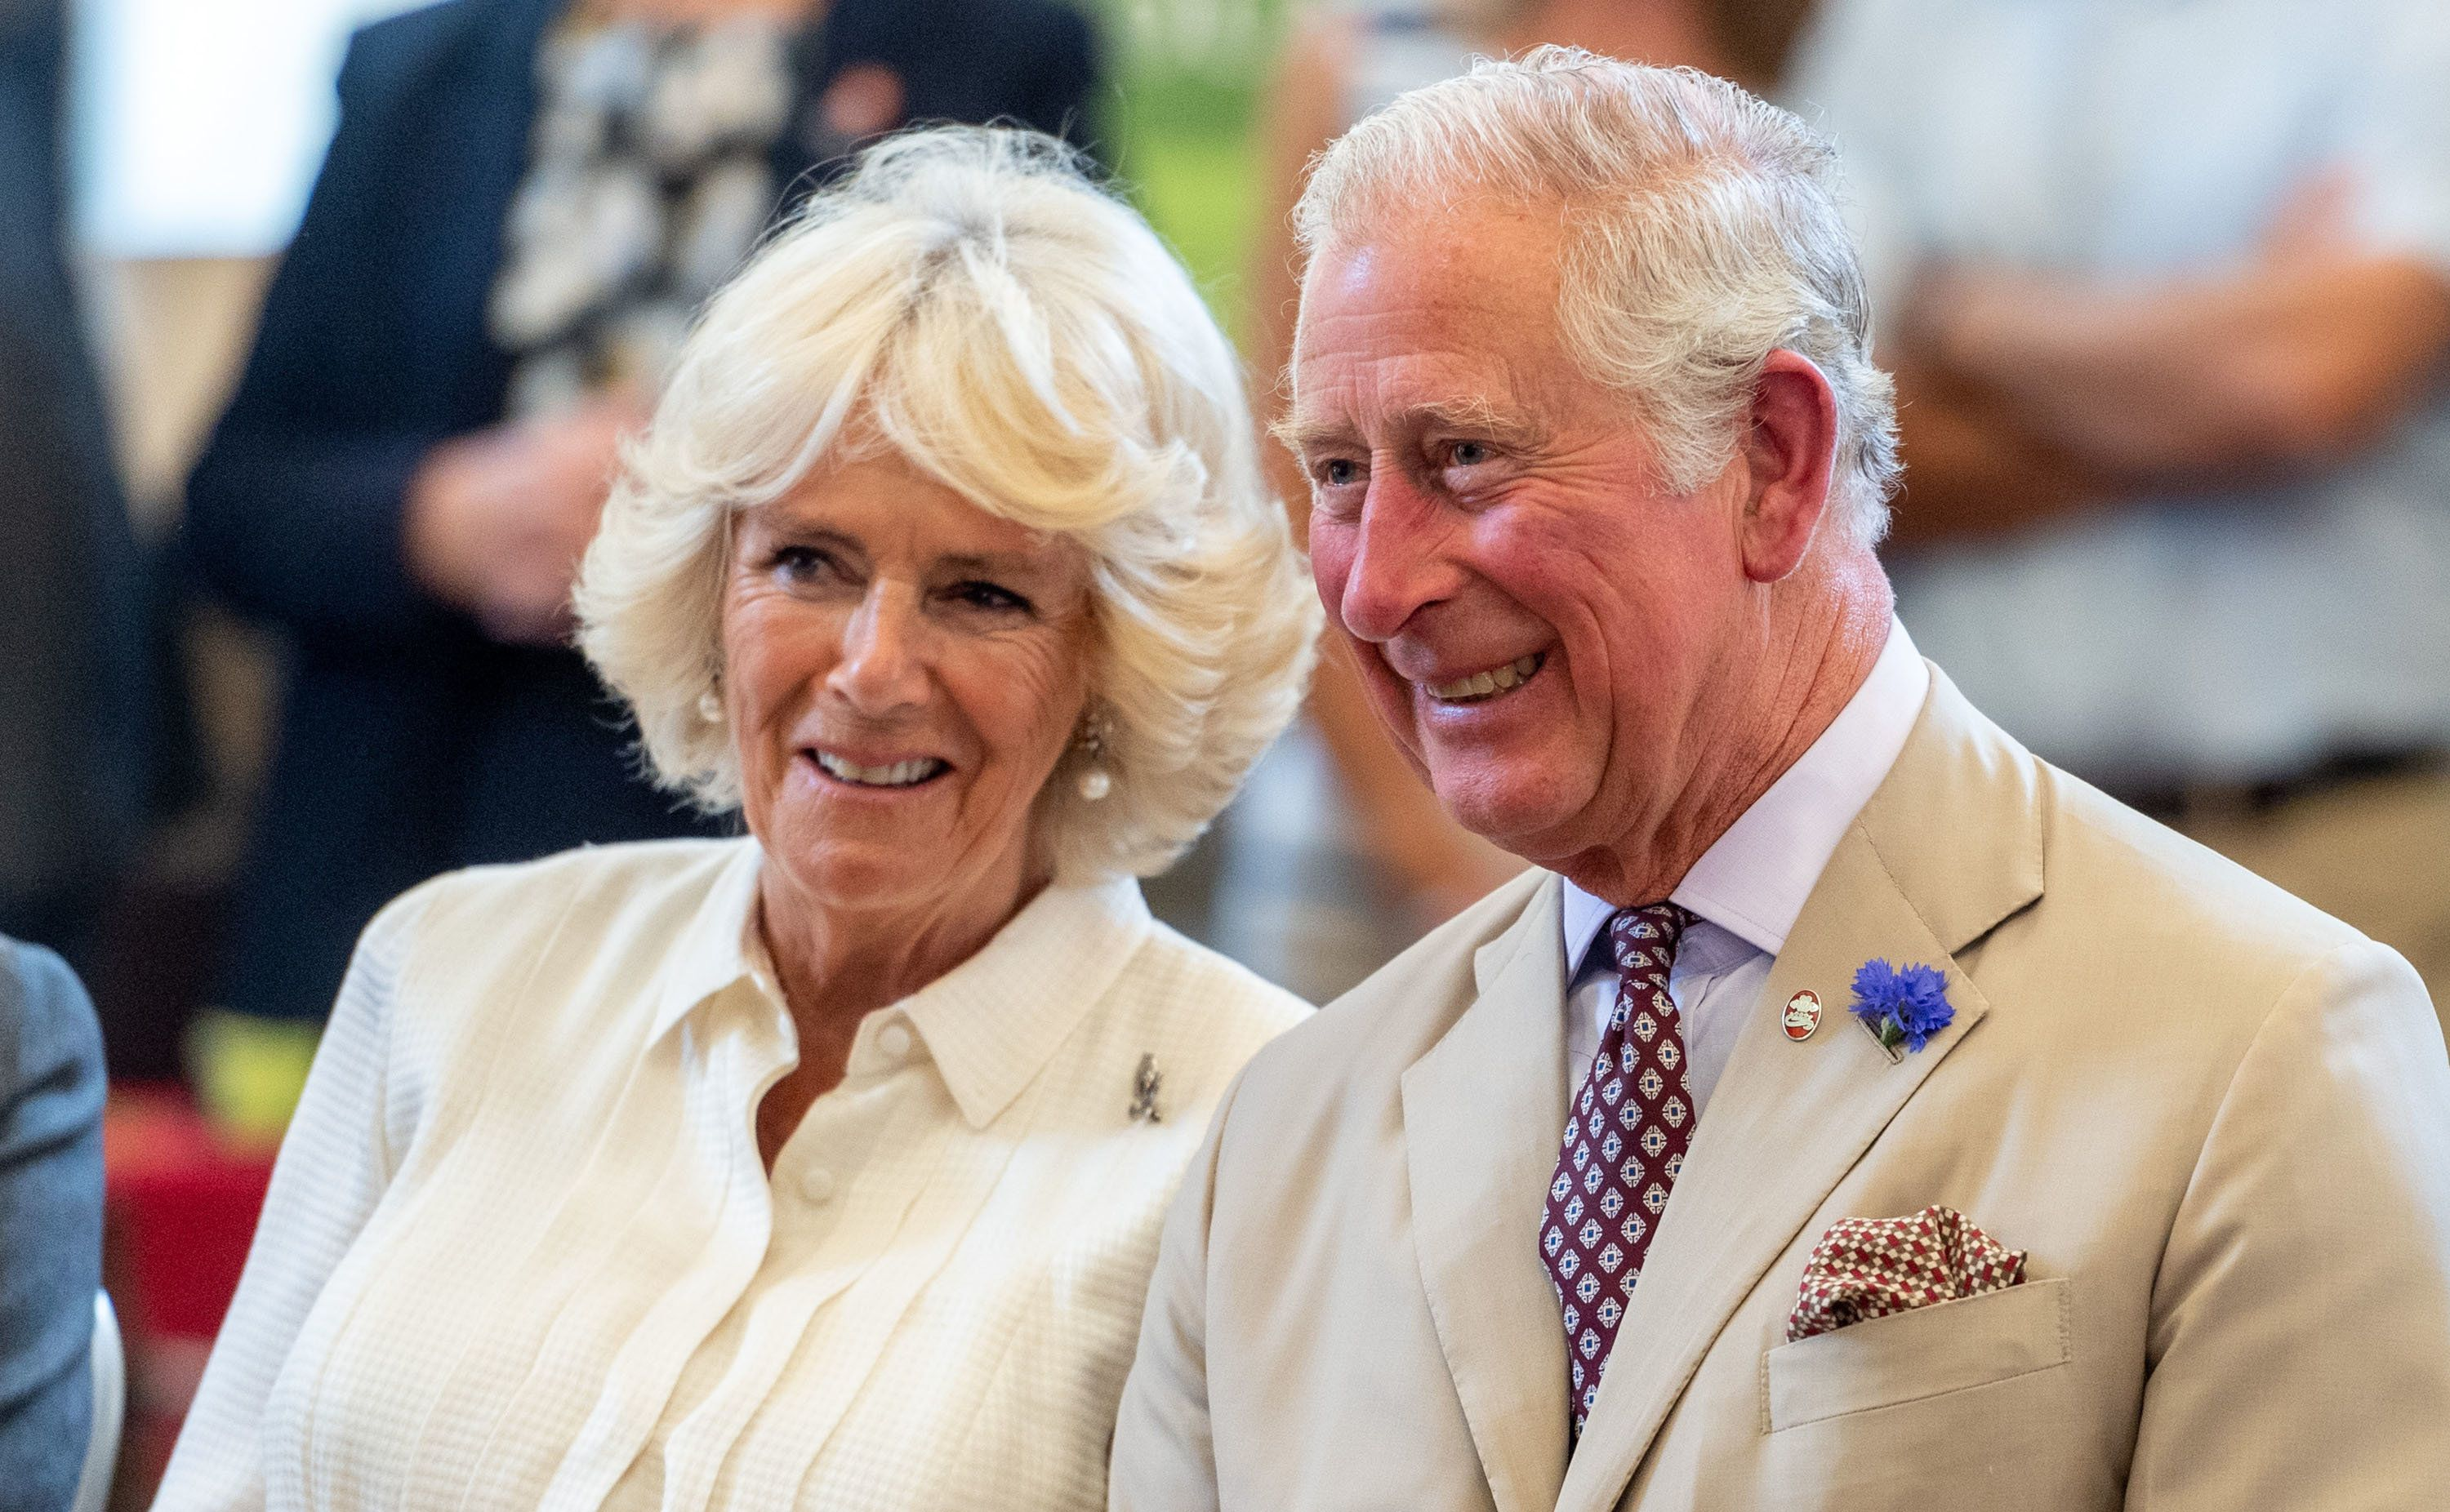 BUILTH WELLS, WALES - JULY 04: Prince Charles, Prince of Wales and Camilla, Duchess of Cornwall watch a performance at The Strand Hall on July 4, 2018 in Builth Wells, Wales. (Photo by Mark Cuthbert/UK Press via Getty Images)